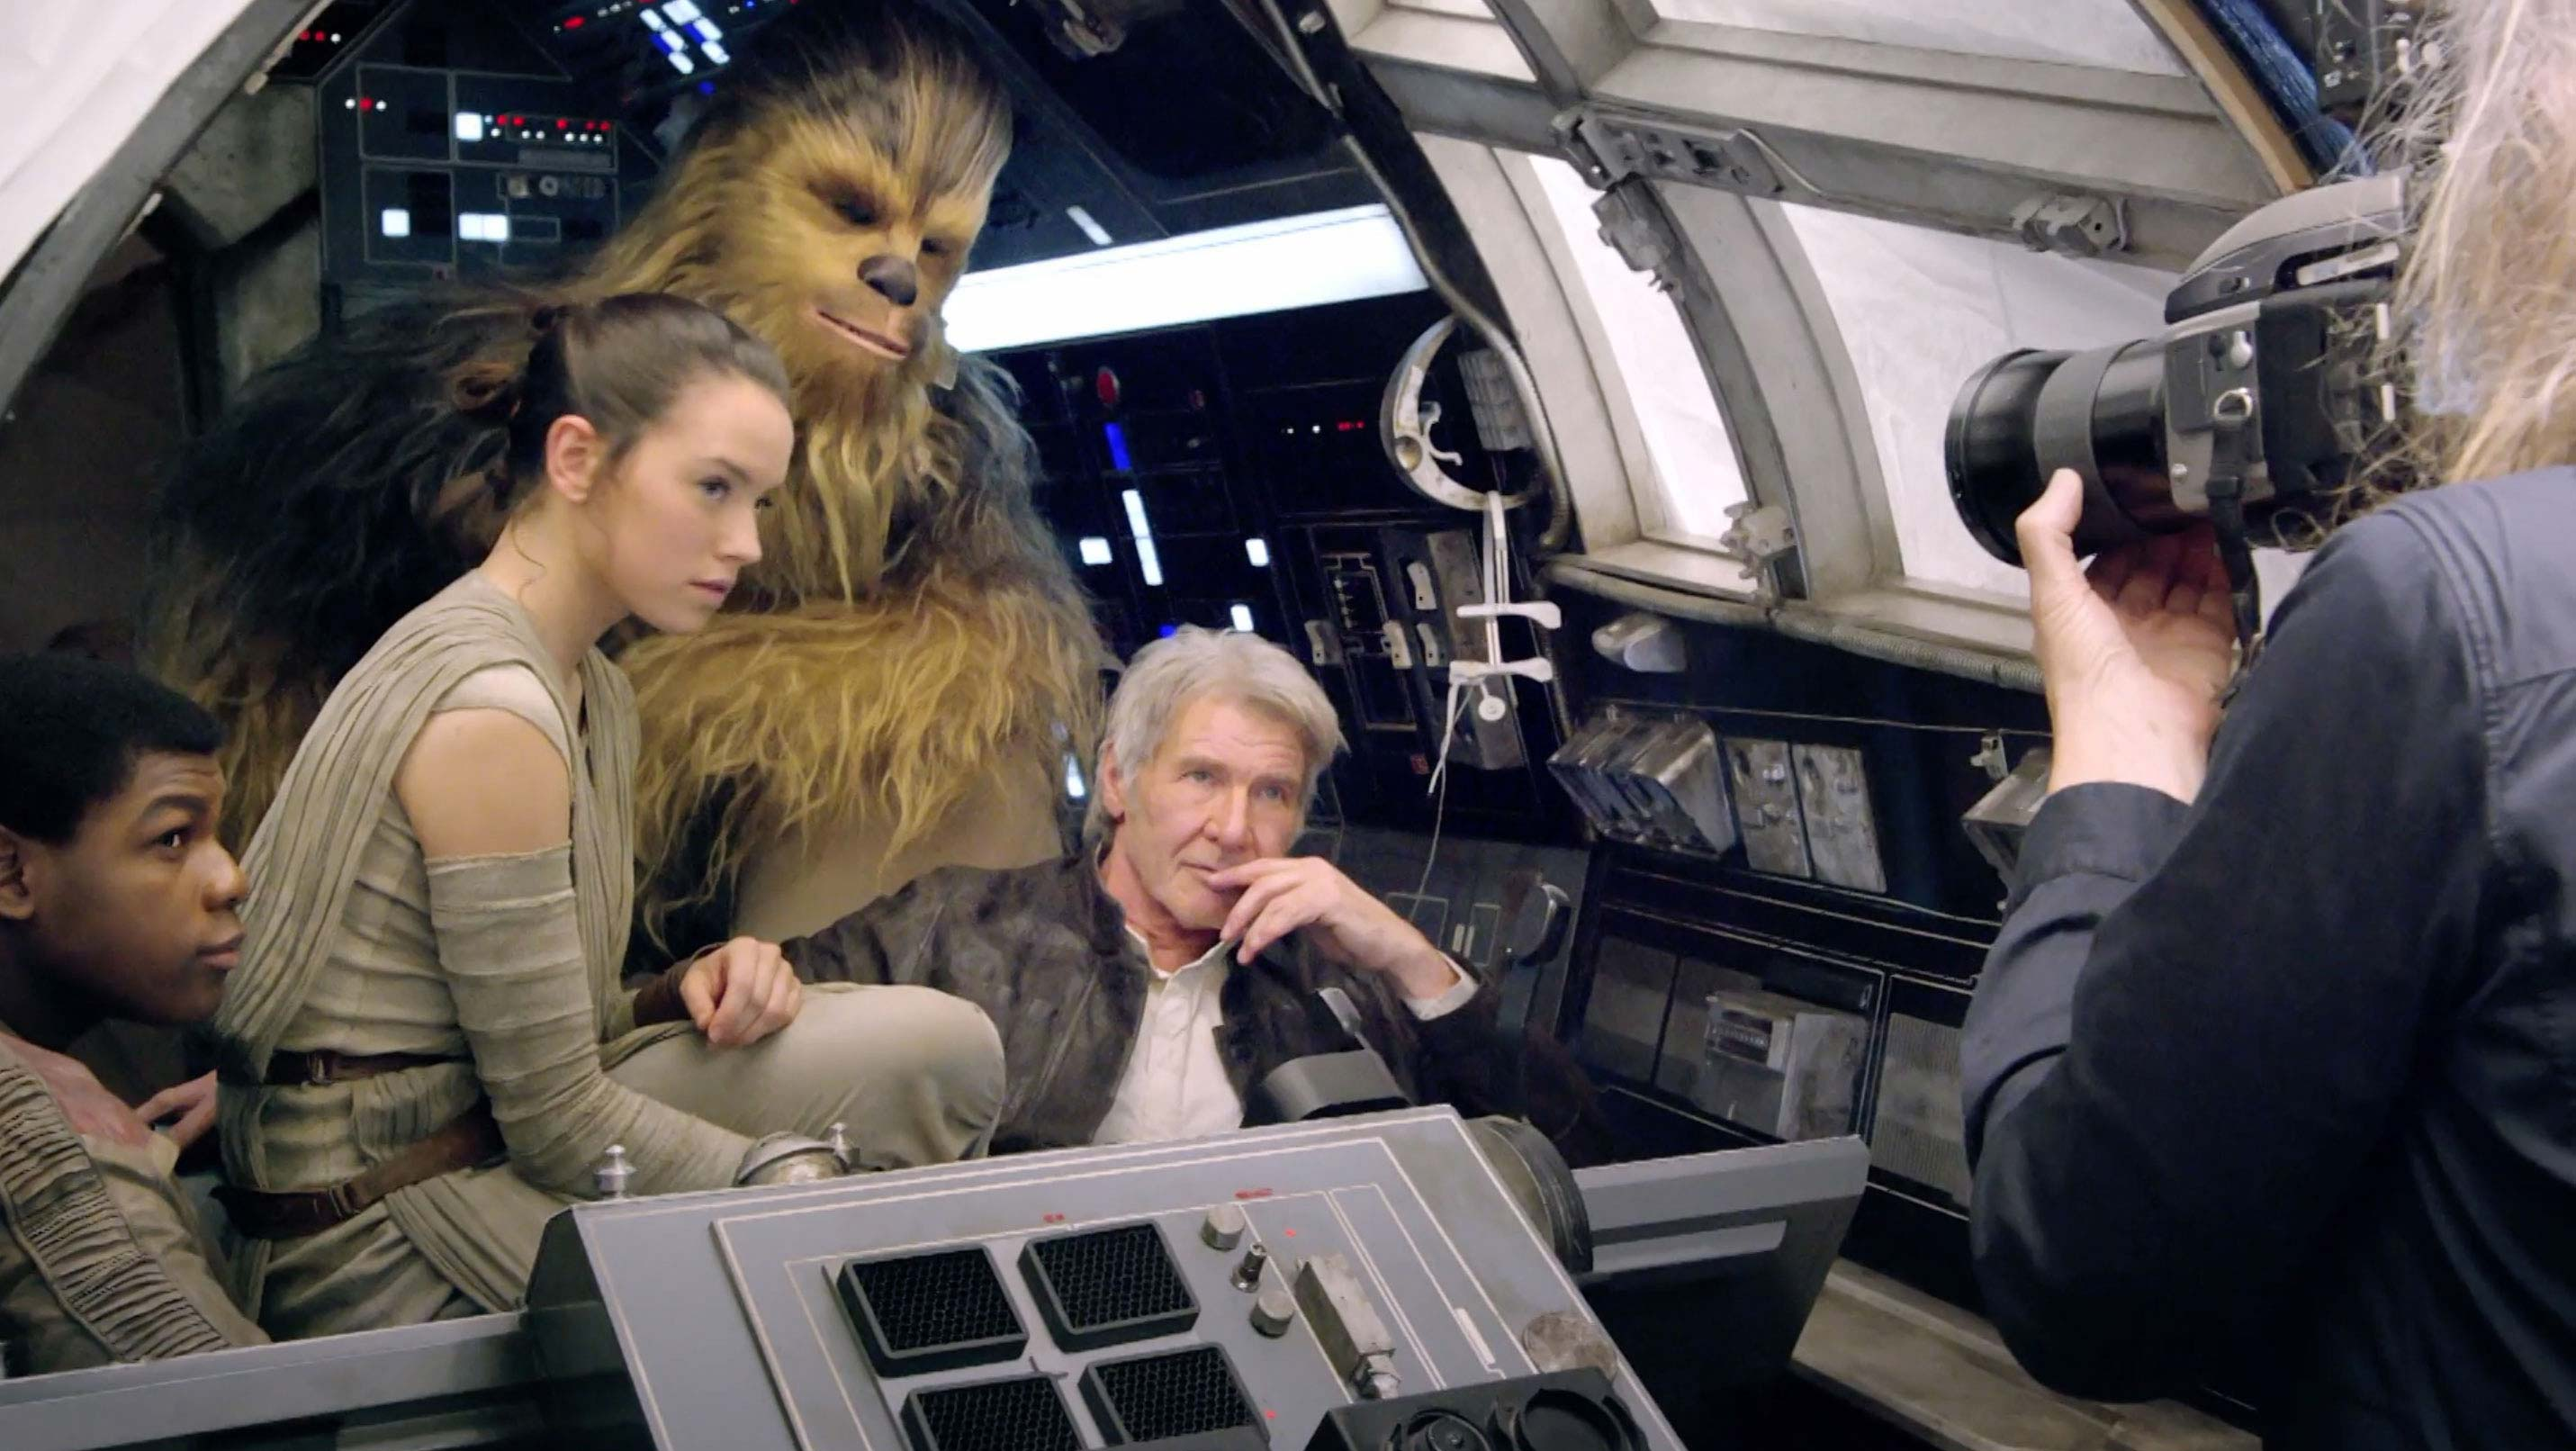 Star-Wars-The-Force-Awakens-Vanity-Fair-John-Boyega-Daisy-Ridley-Harrison-Ford.jpg